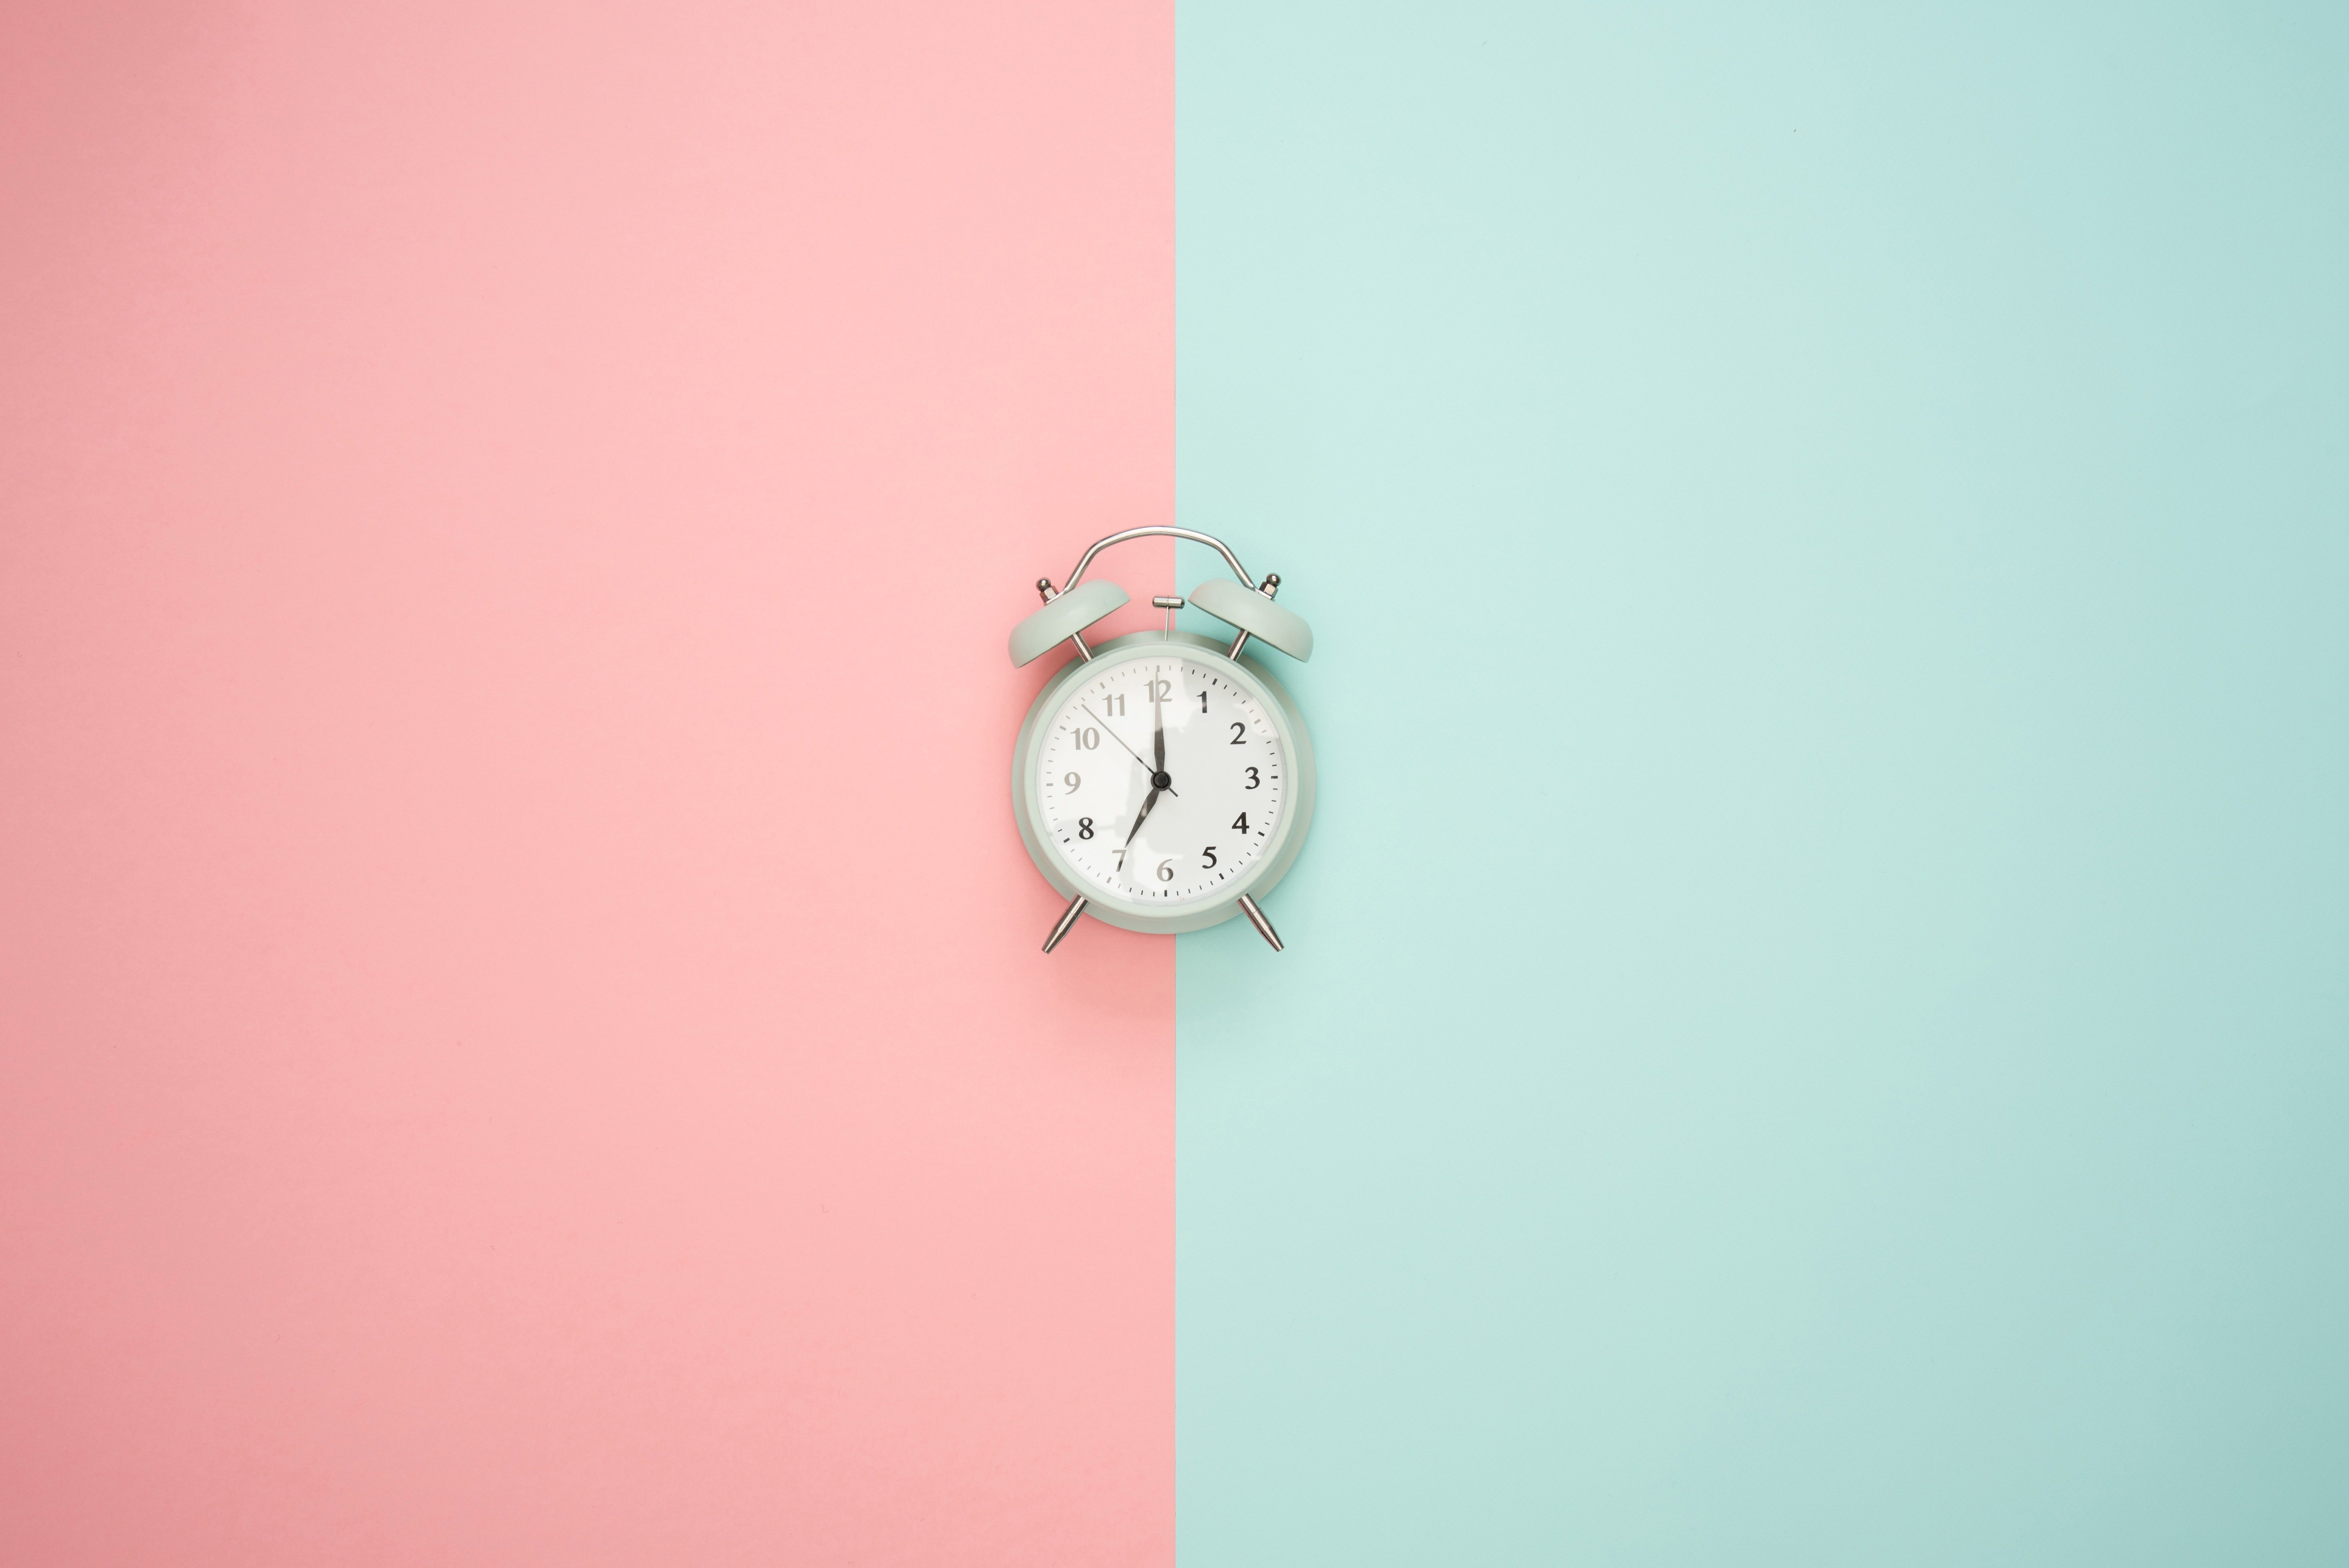 A Strategy for Getting Current on Past Due Bills